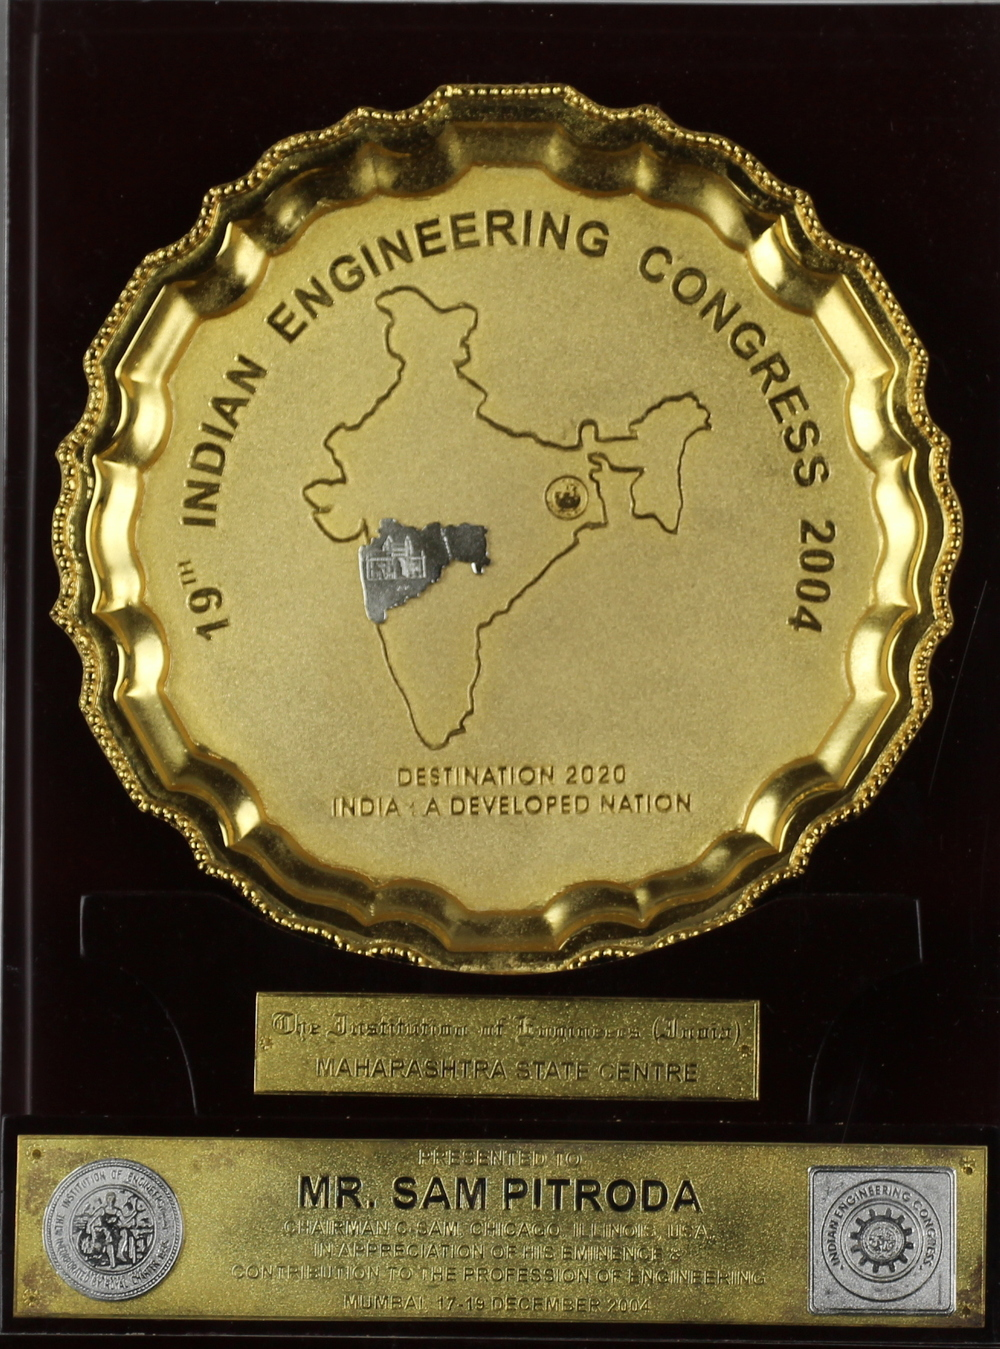 Award of Appreciation, 19th Indian Engineering Congress, 2004